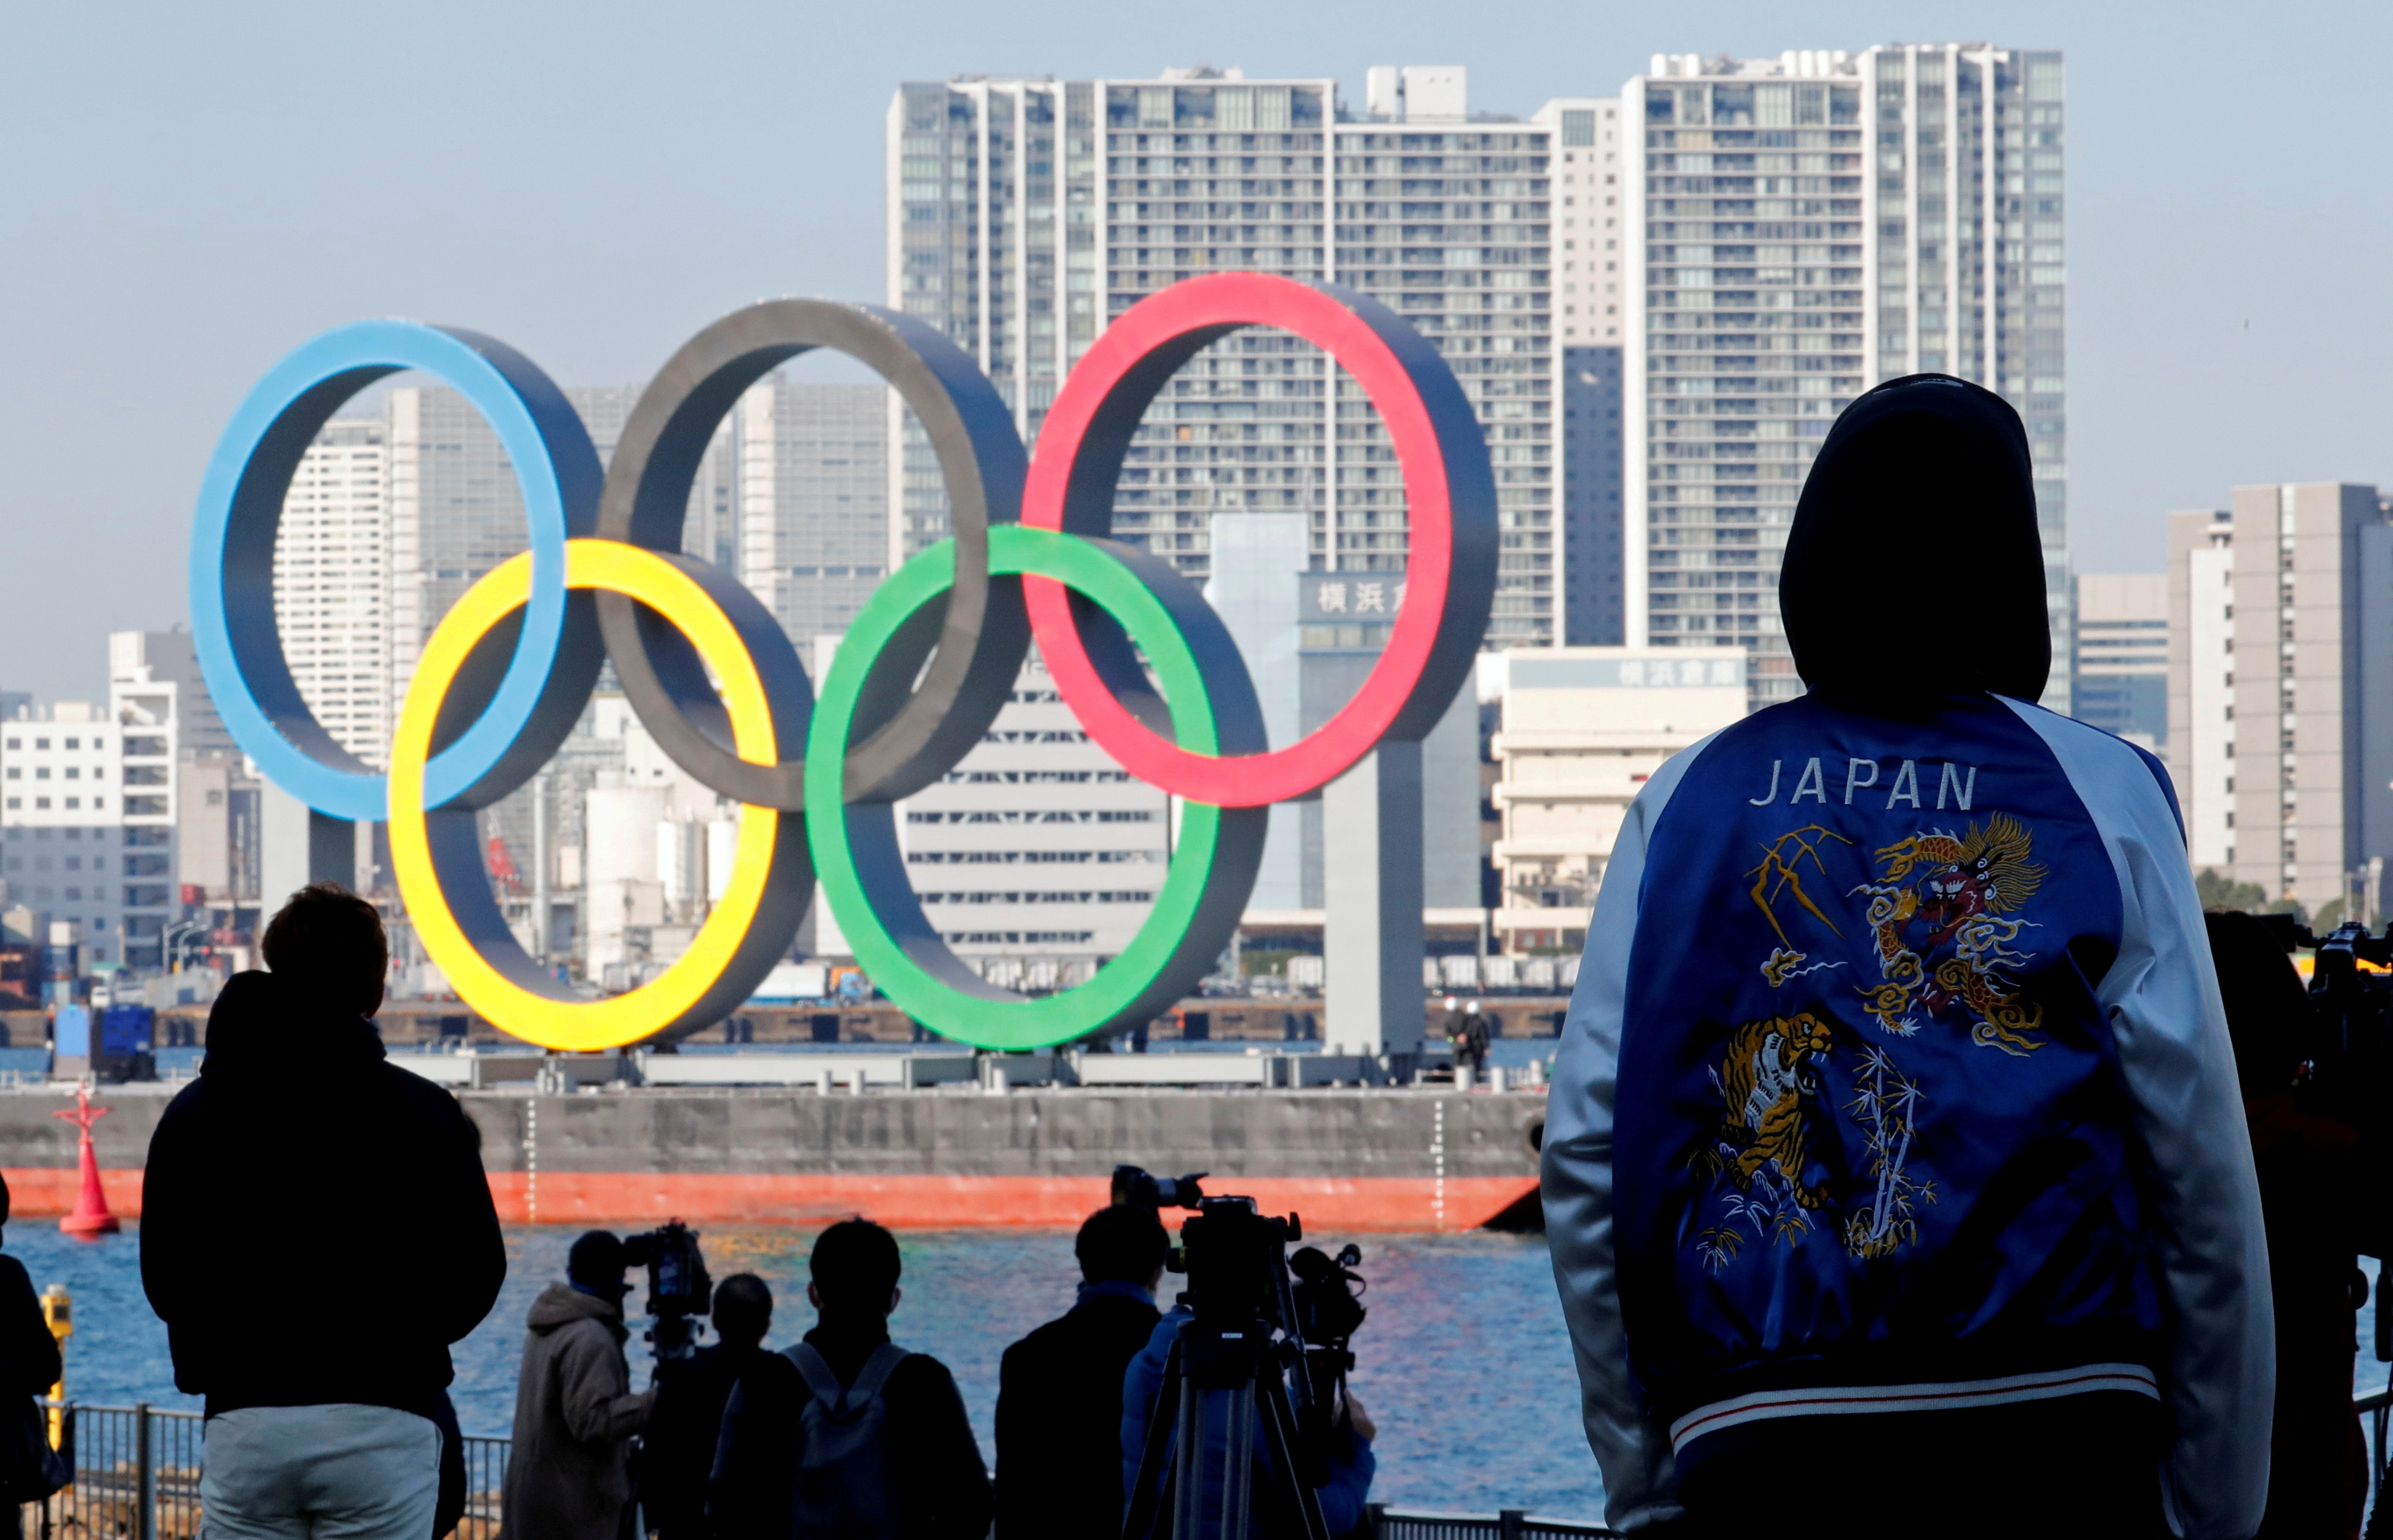 Bystanders watch as giant Olympic rings are reinstalled at the waterfront area at Odaiba Marine Park, after they were temporarily taken down in August for maintenance amid the coronavirus disease (COVID-19) outbreak, in Tokyo, Japan December 1, 2020. REUTERS/Kim Kyung-Hoon/File Picture